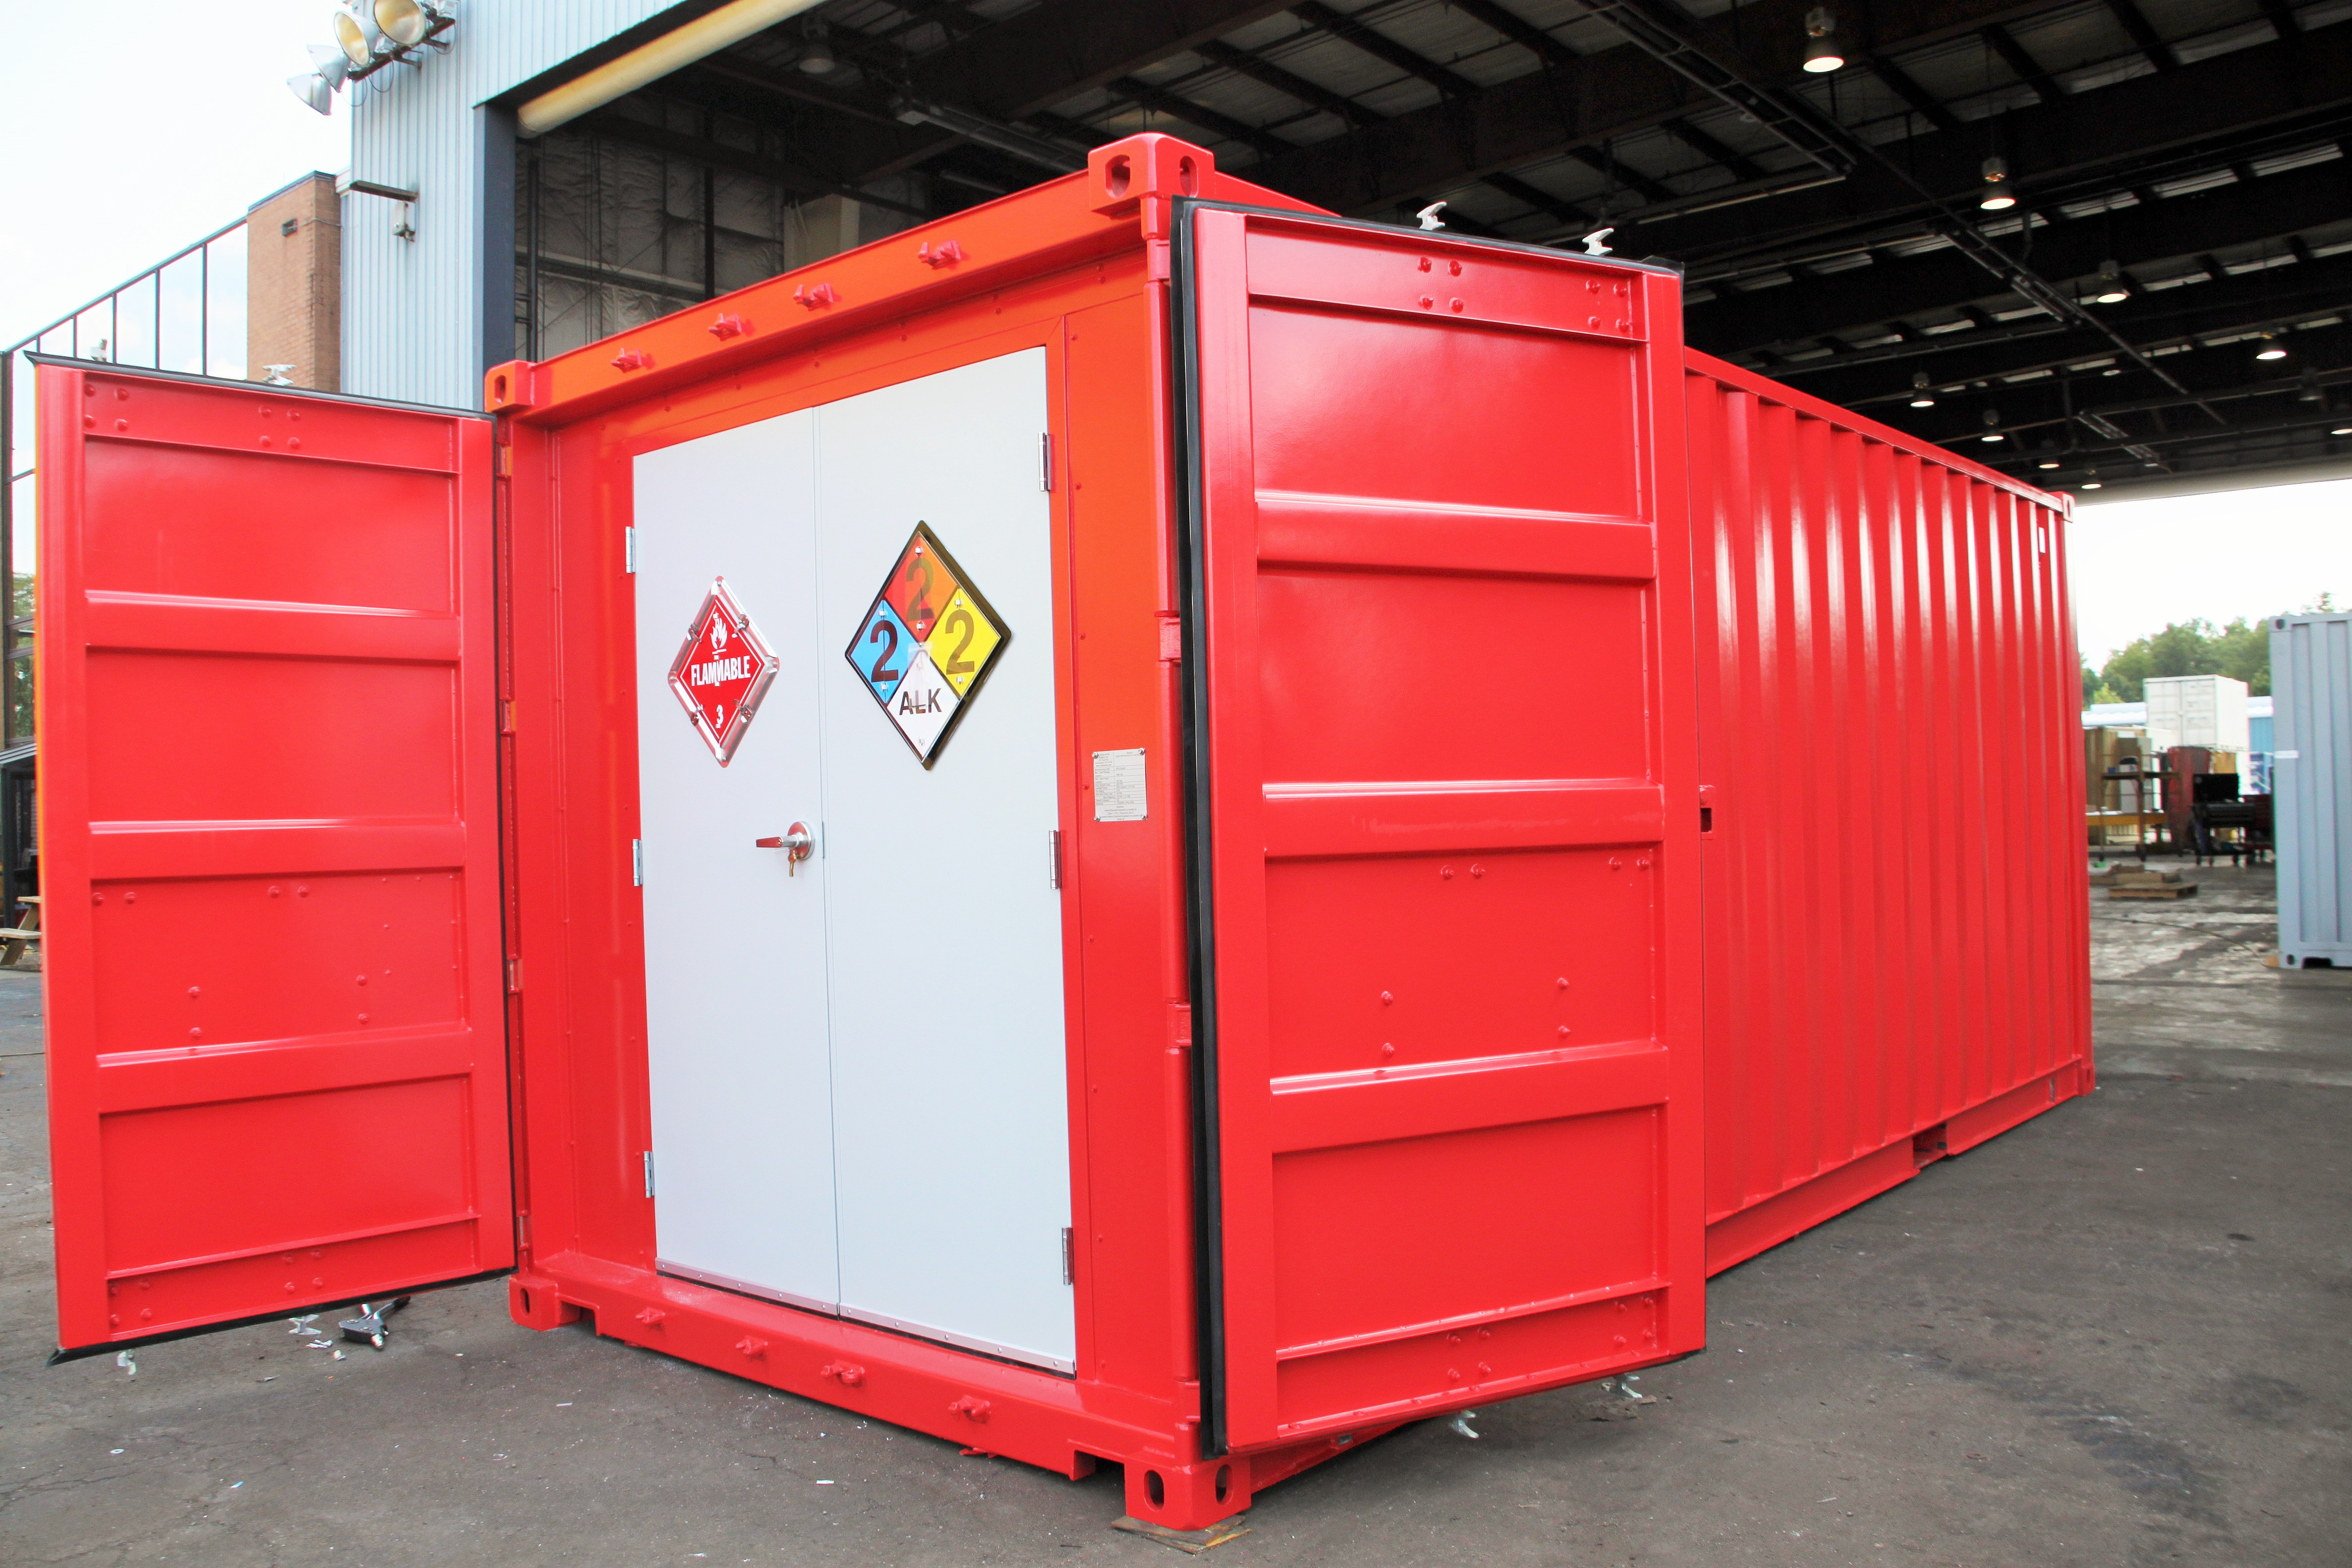 shipping container modification, DropBox Inc, shipping container modifications, custom shipping container modification, portable hazmat chemical storage, hazmat chemical storage